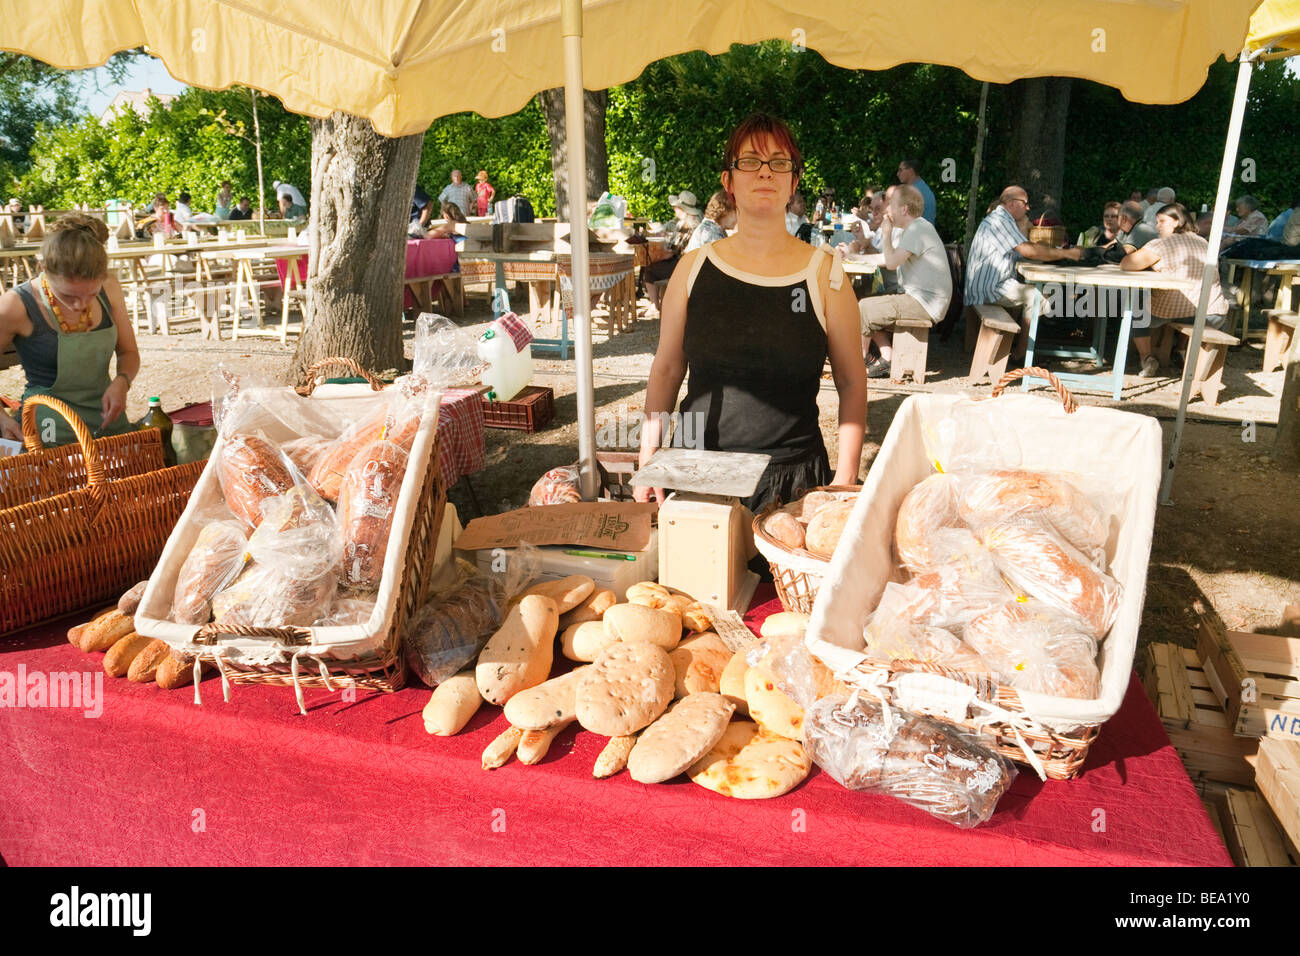 Bread stall at a French evening market, Laparade, Aquitaine, France - Stock Image